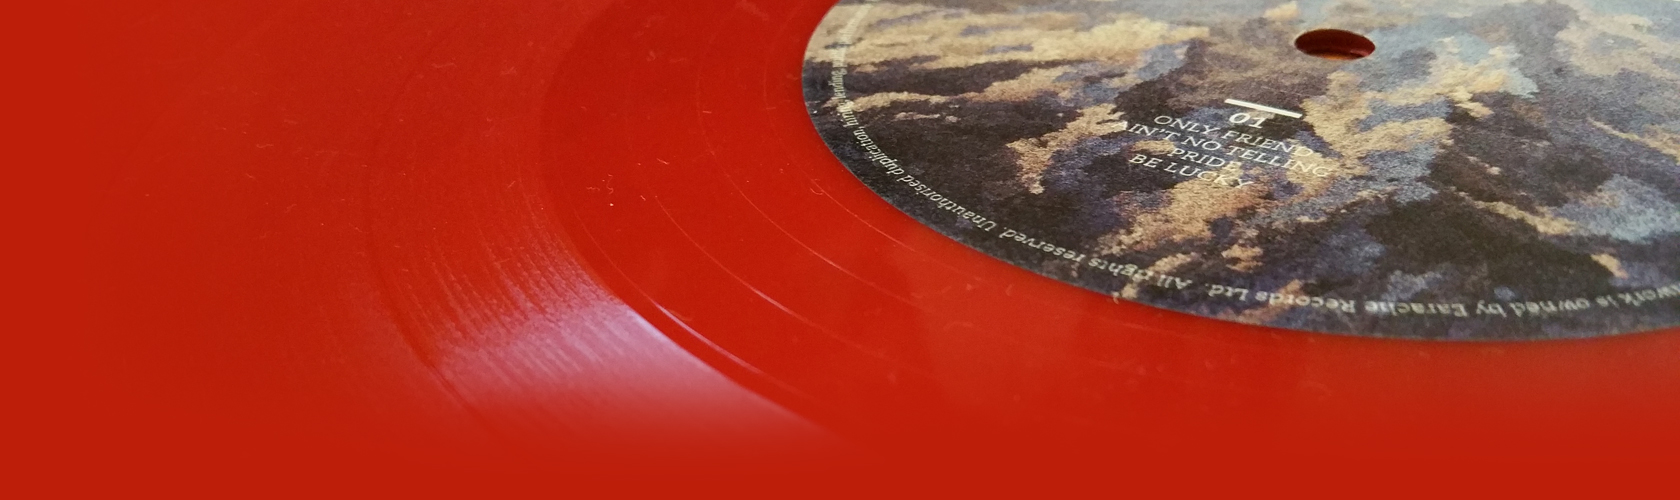 The Temperance Movement red vinyl